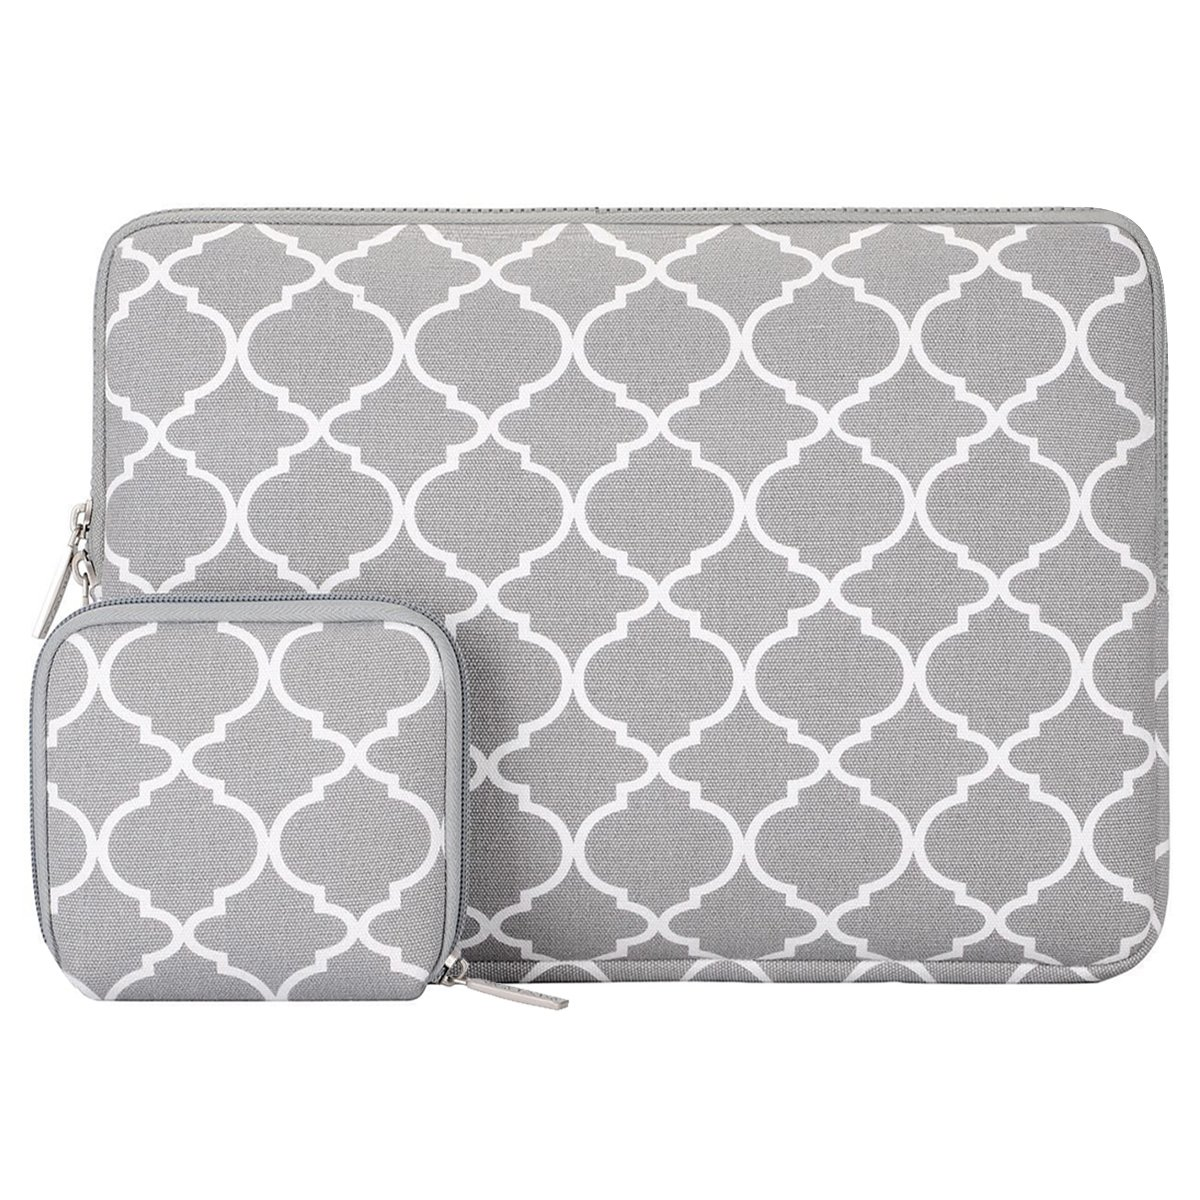 Mosiso Quatrefoil Style Canvas Fabric Laptop Sleeve Bag Cover for 13-13.3 Inch MacBook Pro, MacBook Air, Notebook with a Small Case, Gray 13-Quatrefoil-Gray